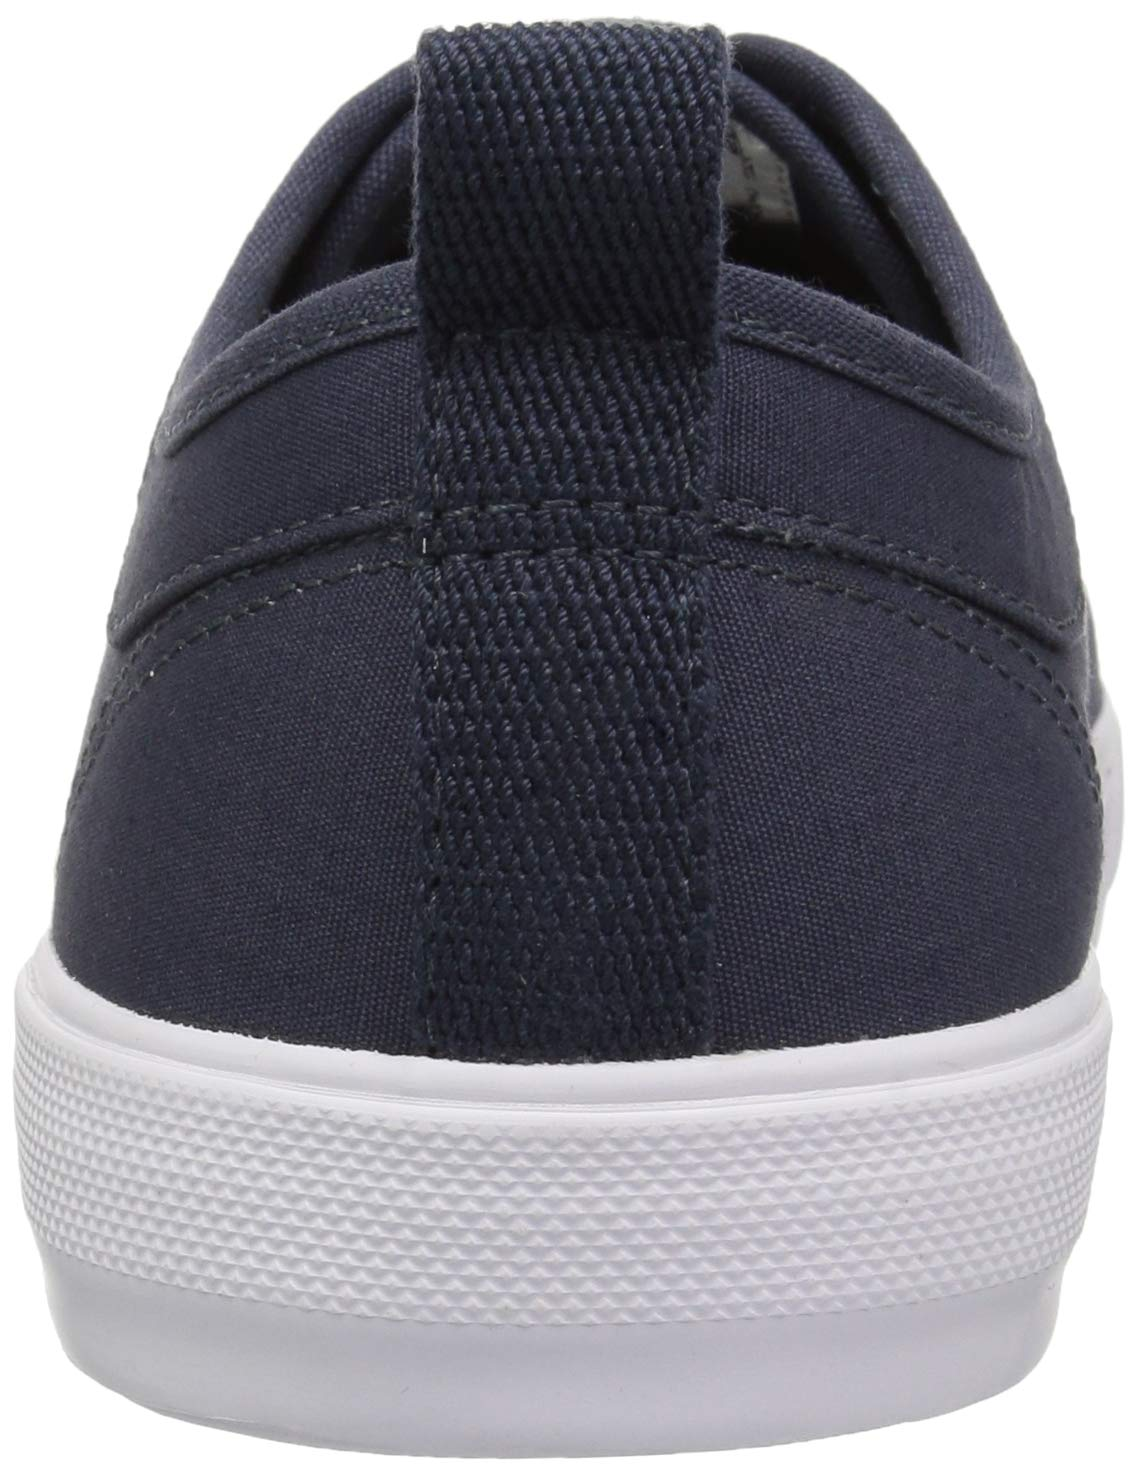 Fred Perry Men's Horton Shower Resist FINE CNV Sneaker, Dark air Force, 6 D UK (7 US) by Fred Perry (Image #2)